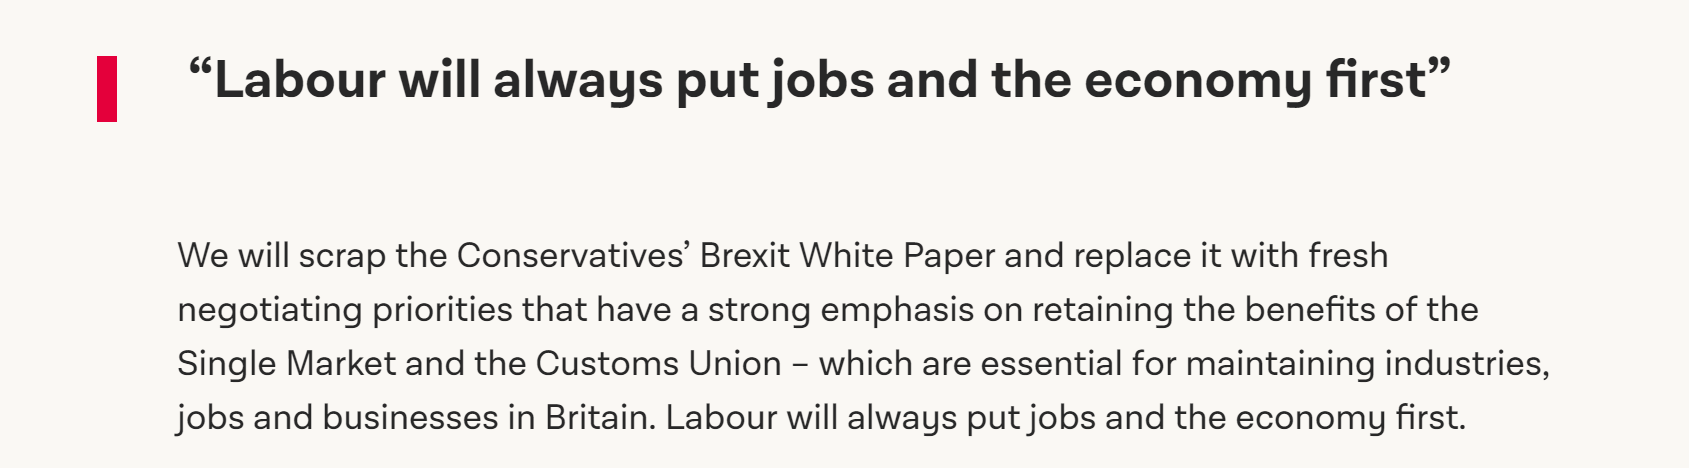 Labour's manifesto claimed that they'd protect the single market, but they've repeatedly voted to not do that.